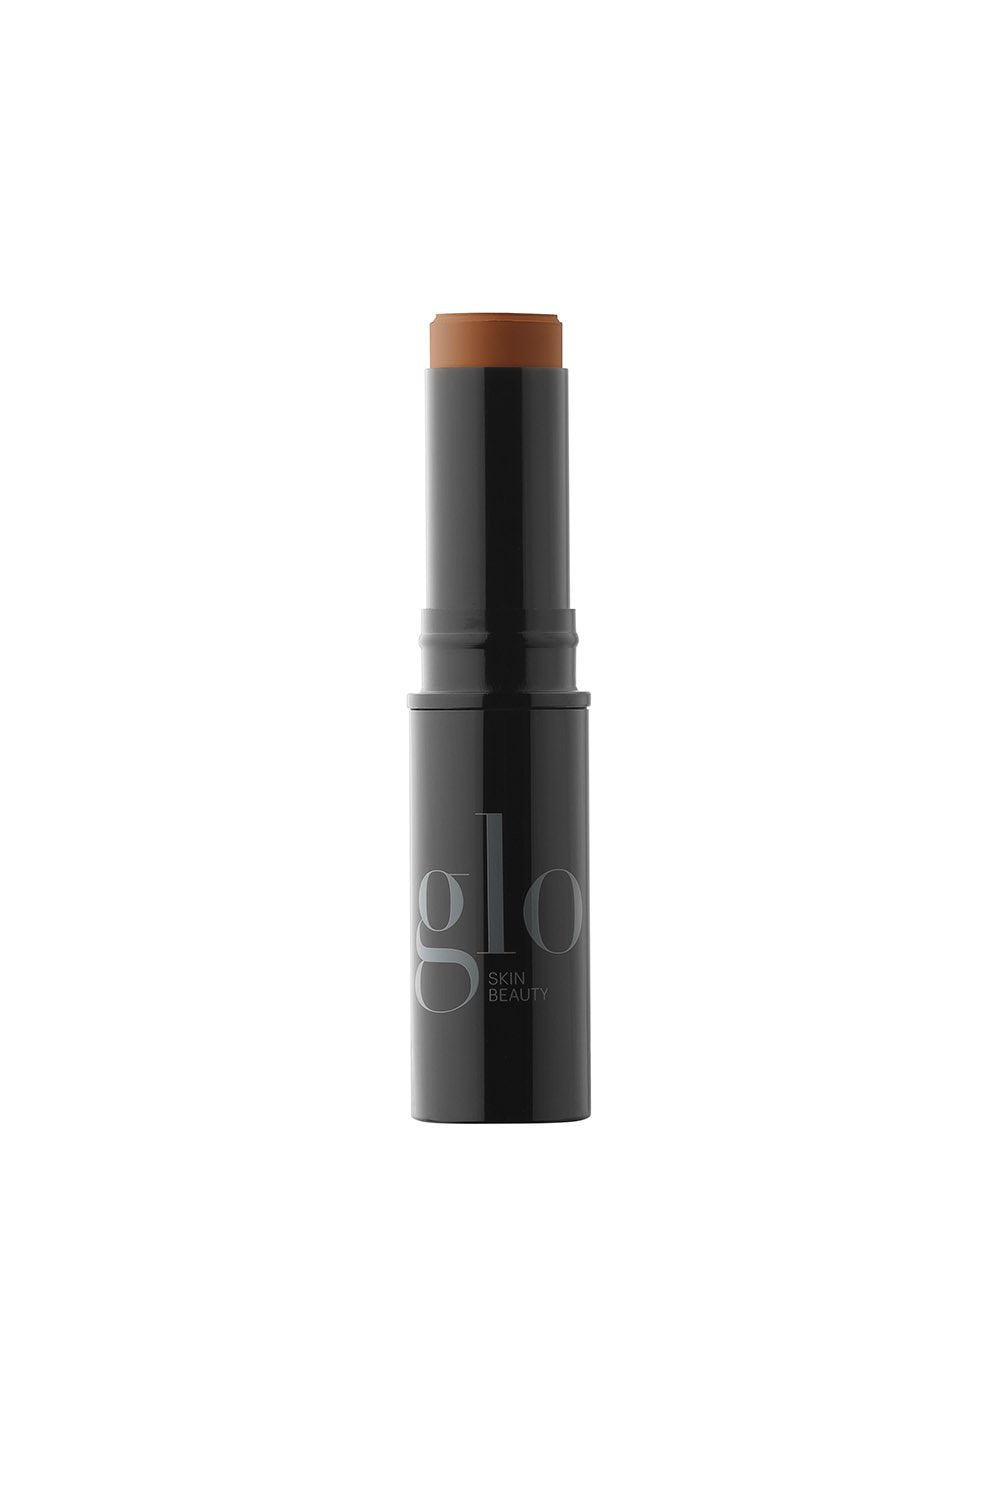 202-1-333 HD Mineral Foundation Stick - Carob 10N